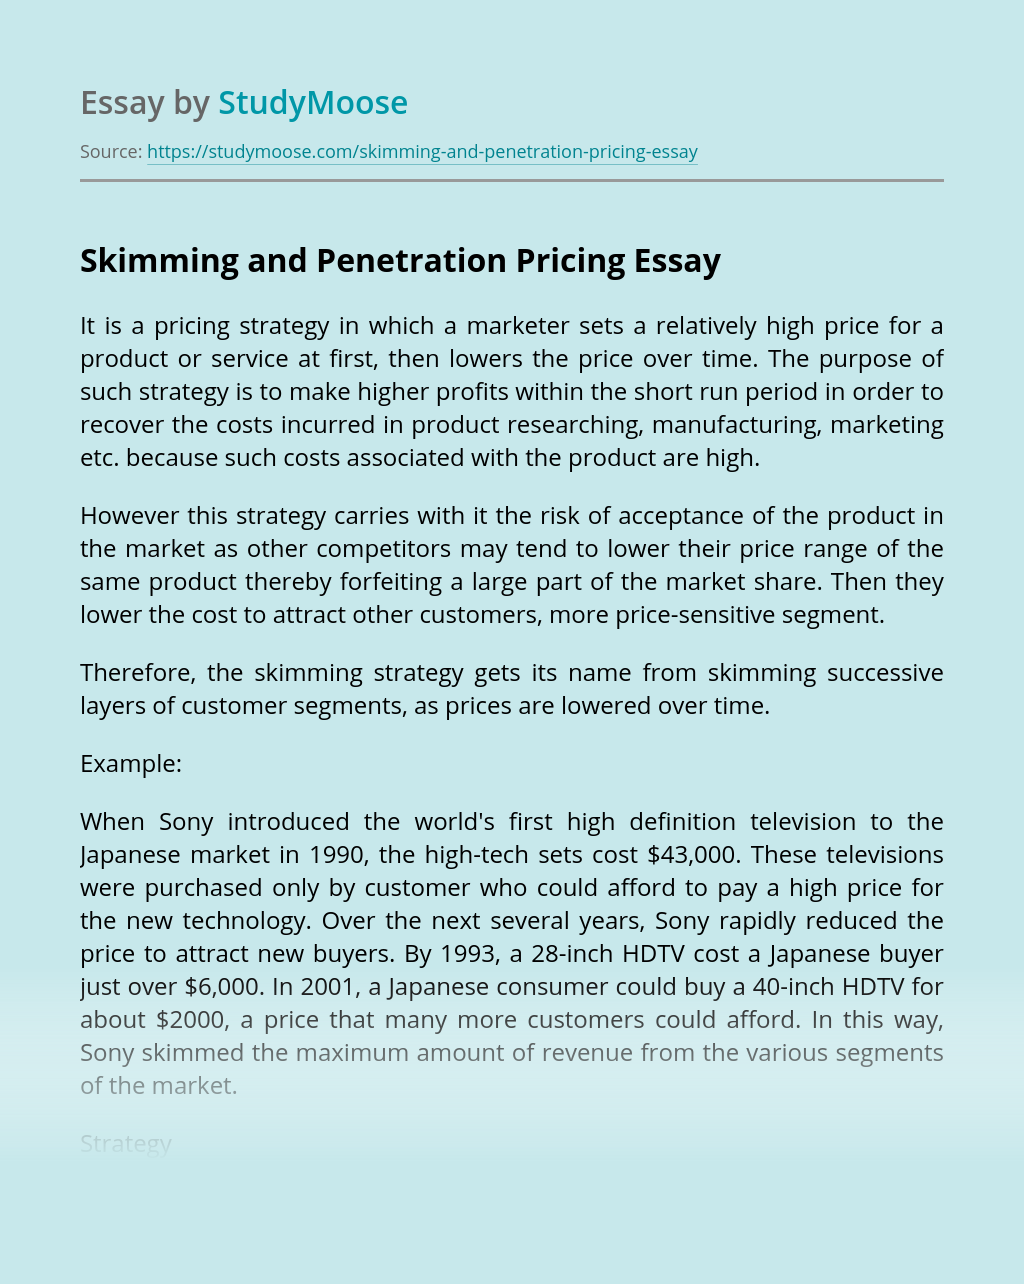 Skimming and Penetration Pricing